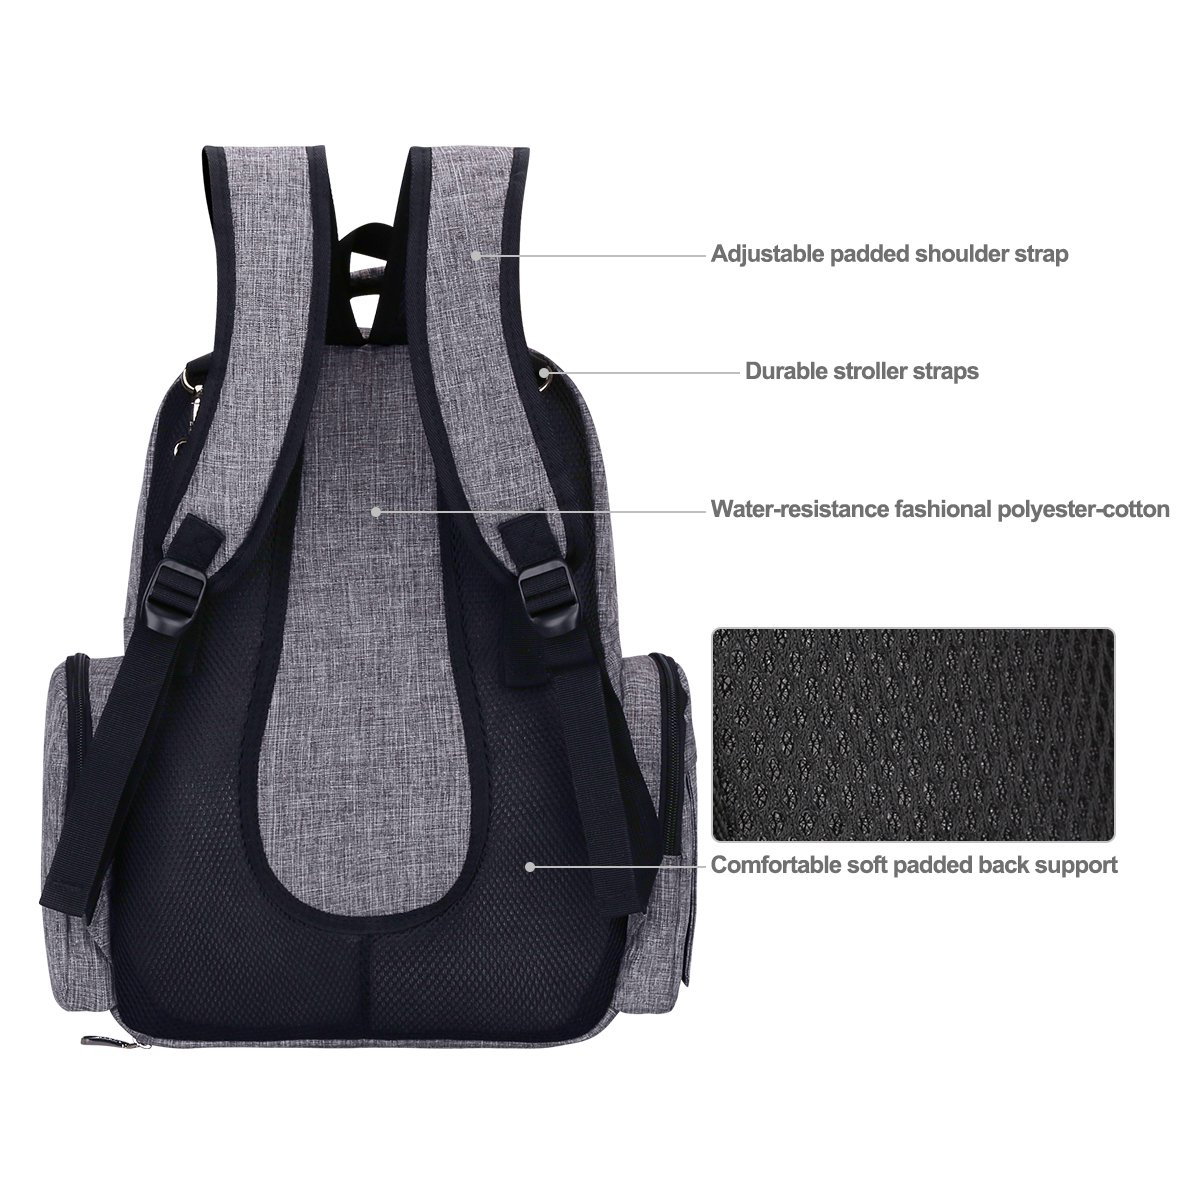 S-ZONE 16 Pockets Baby Diaper Bag Organizer Water Resistant Oxford Fabric Travel Backpack with Changing Pad and Stroller Straps